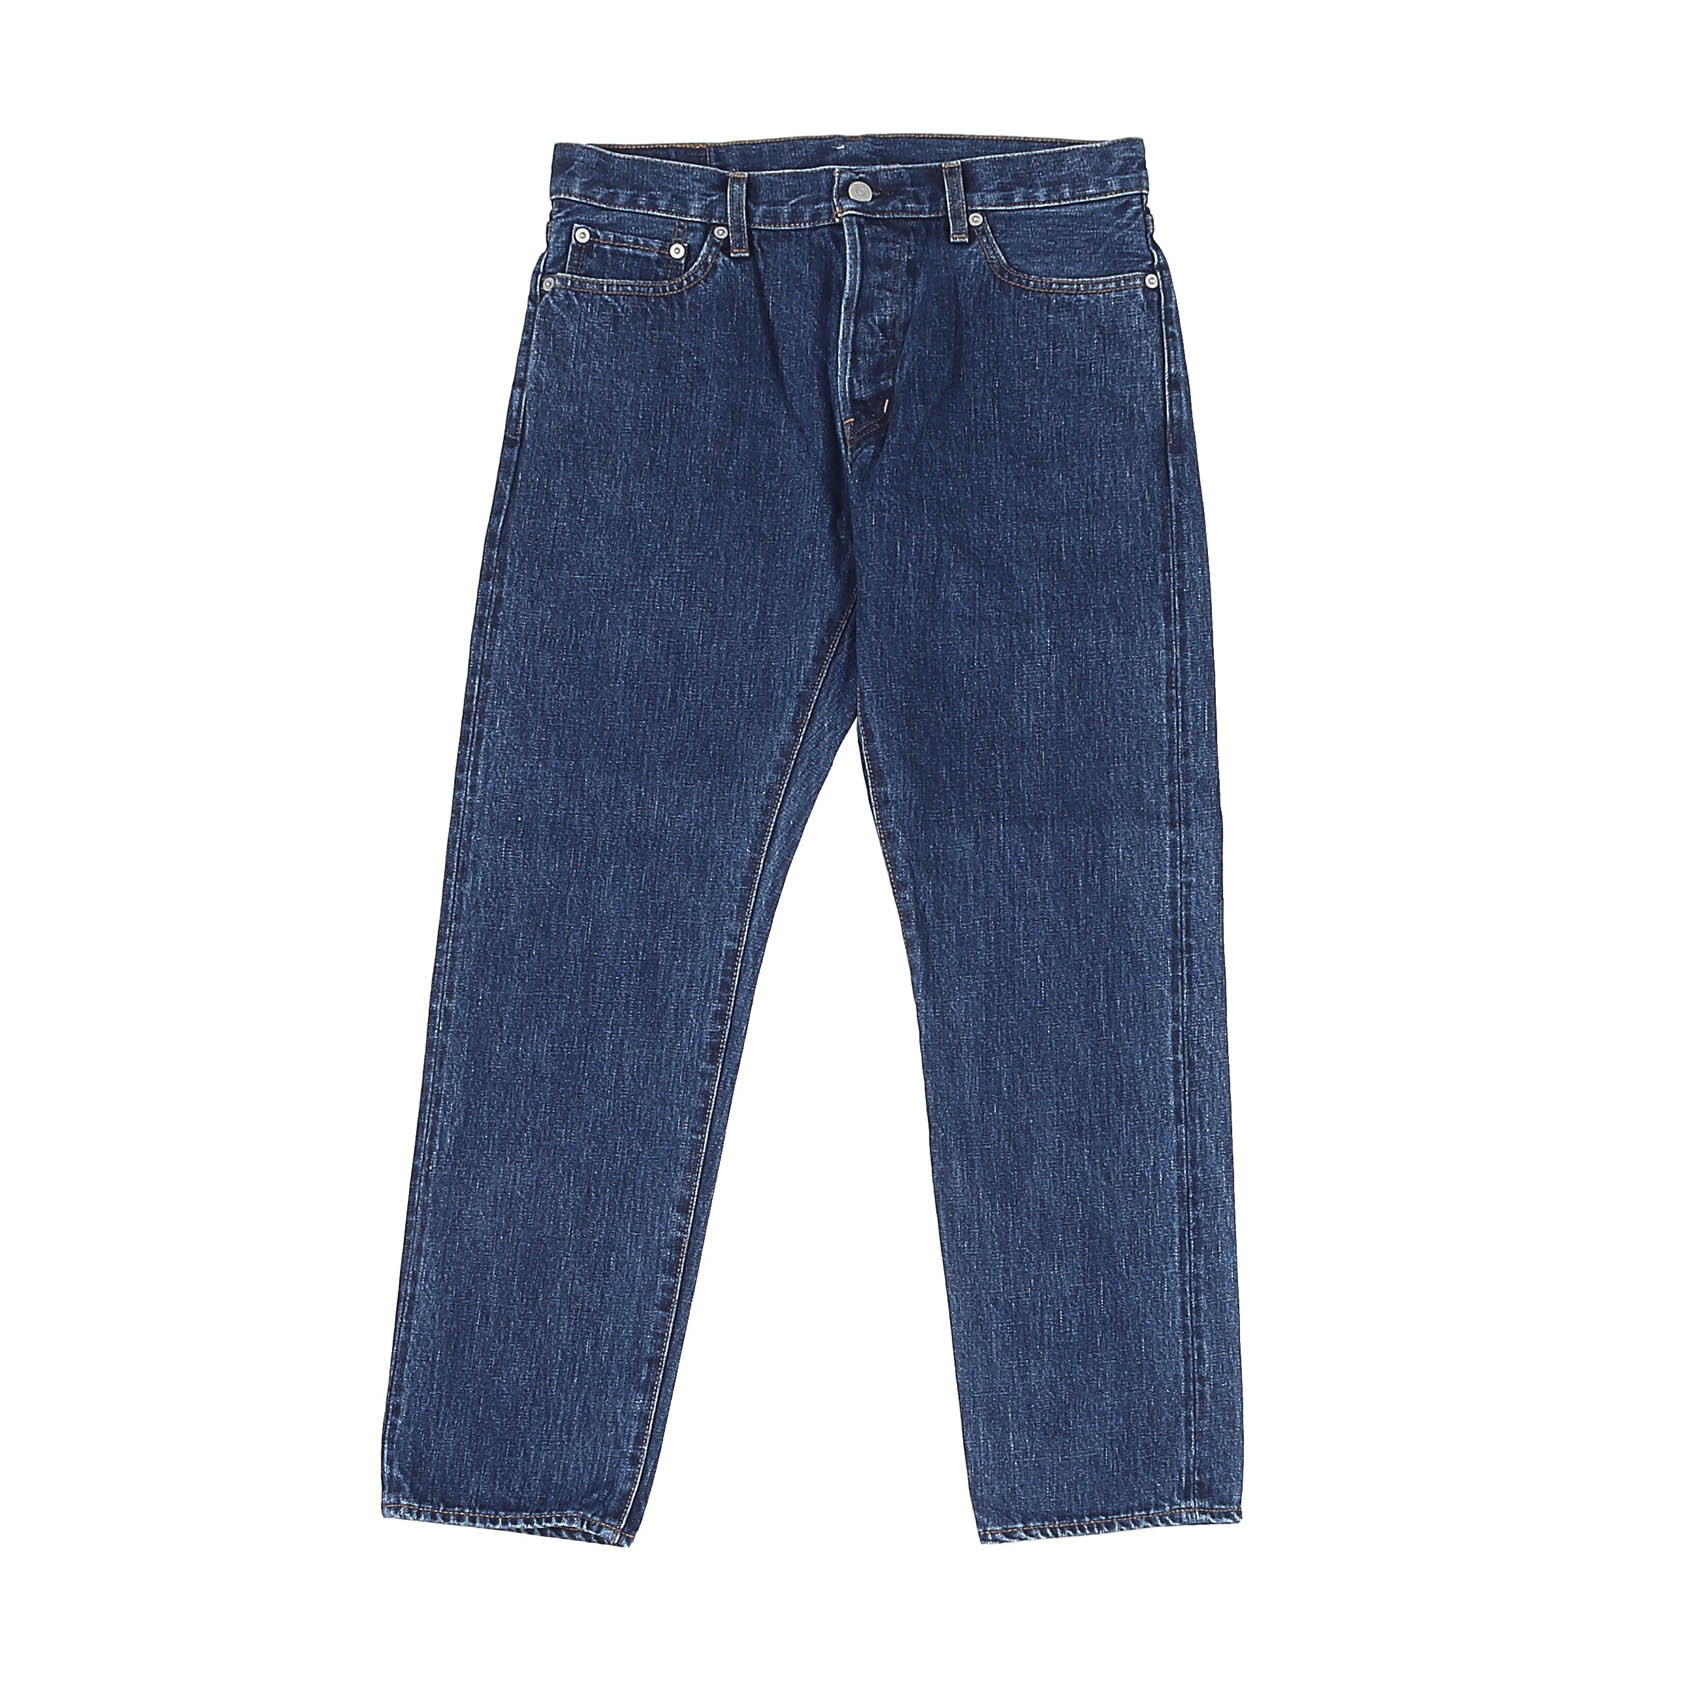 5 POCKET ROLL UP DENIM PANTS - KODAMA